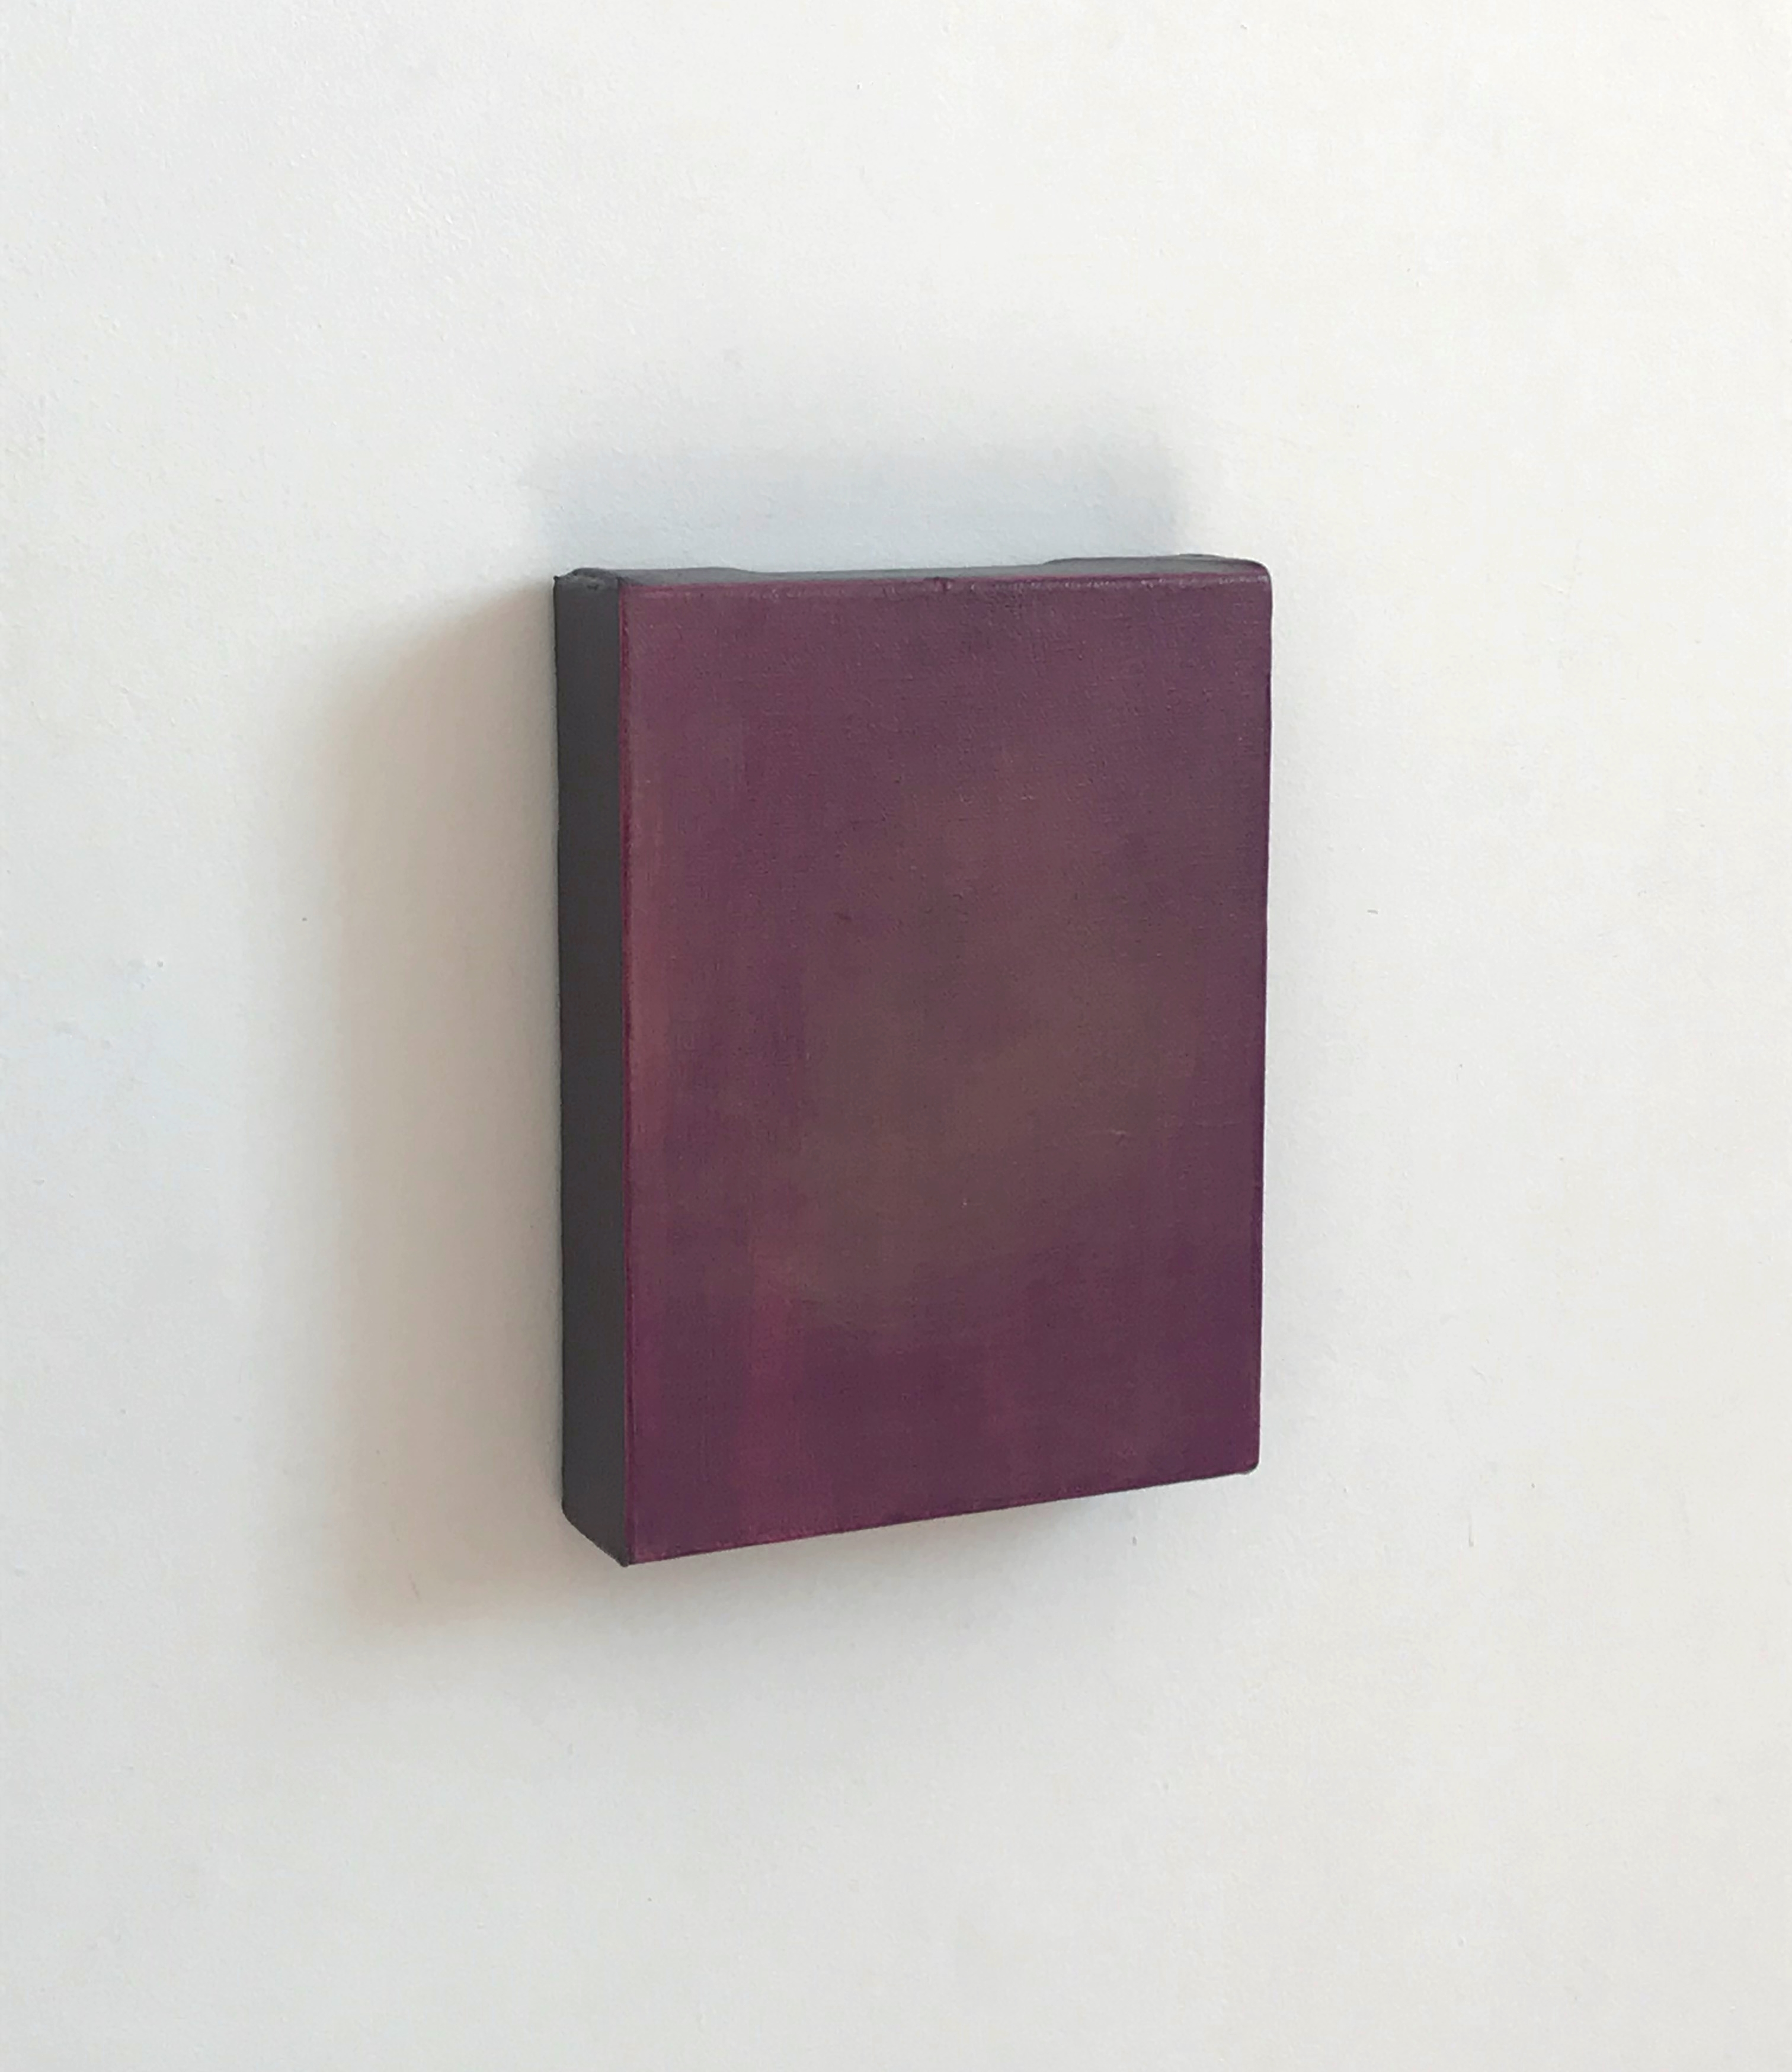 Oxblood | Charlie Franklin, 2018 | oil, acrylic, canvas, wooden support | 20cm x 15cm x 4cm | image: courtesy of the artist